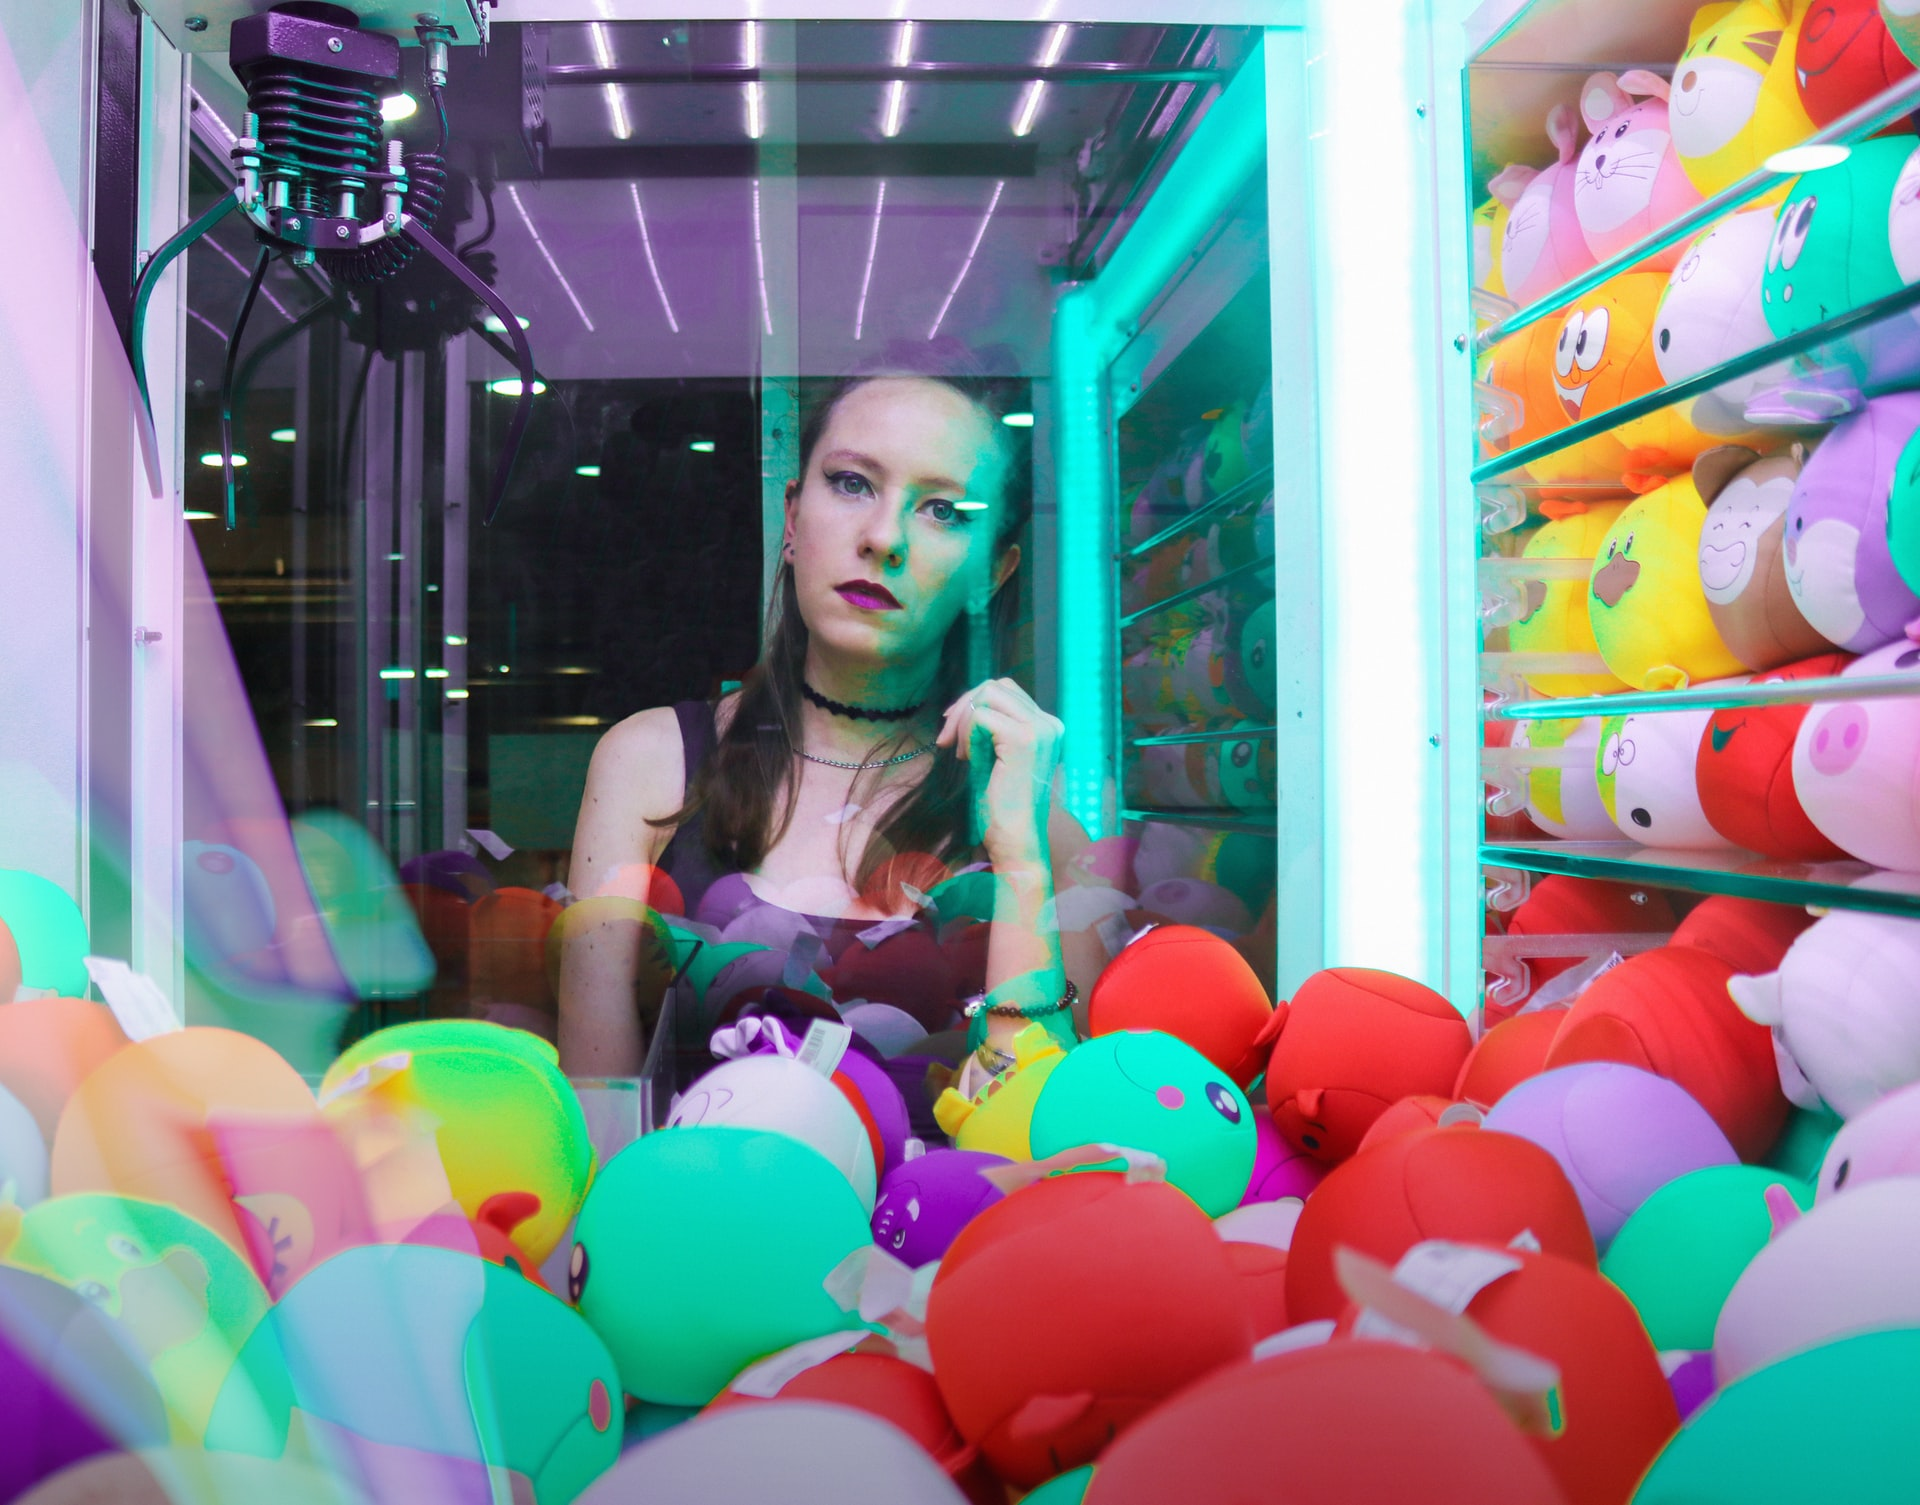 Real-Life Claw Machine Header Image